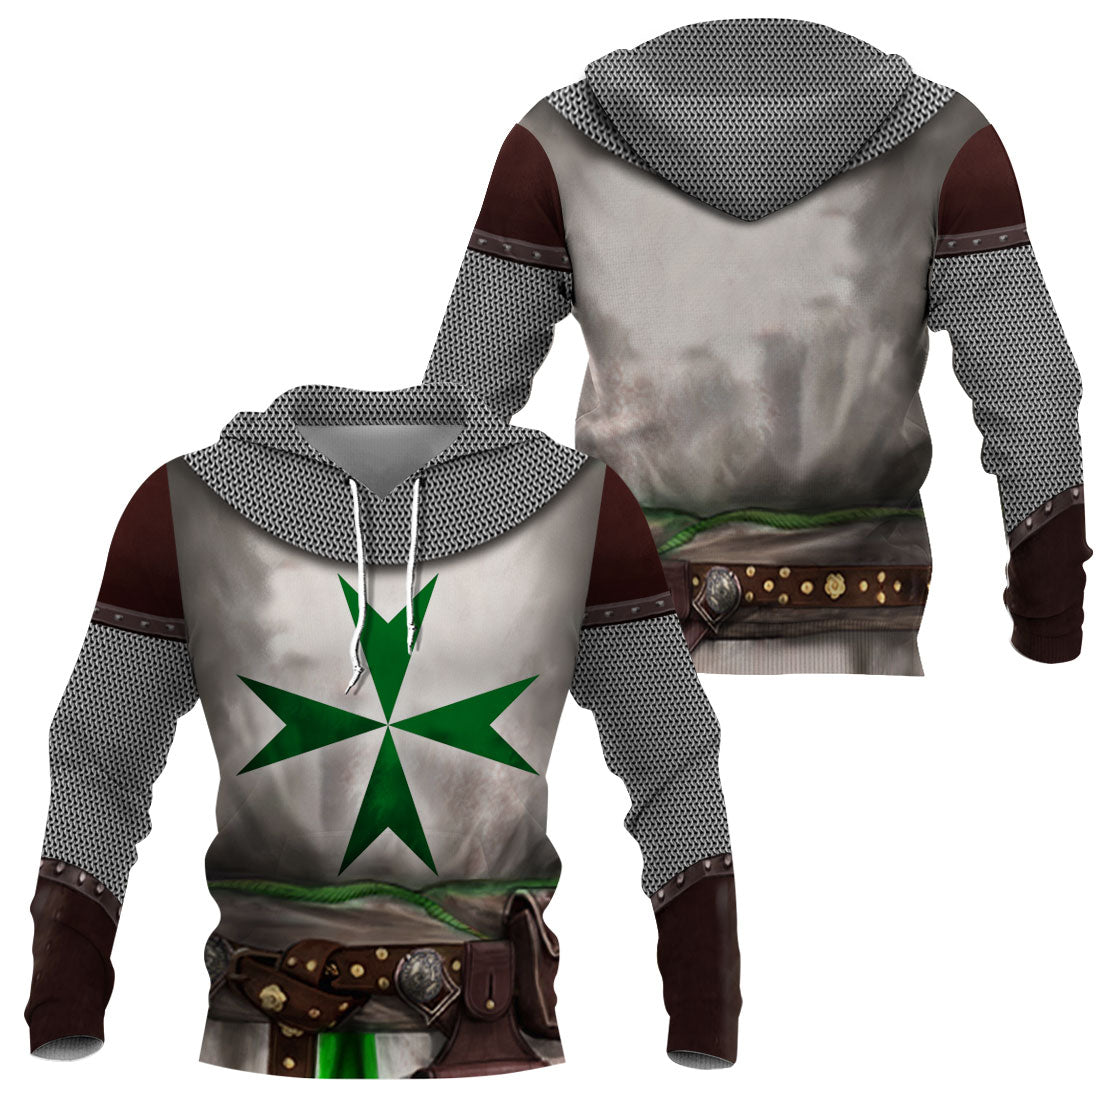 Best selling 3d apparel - Knight of Saint Lazarus